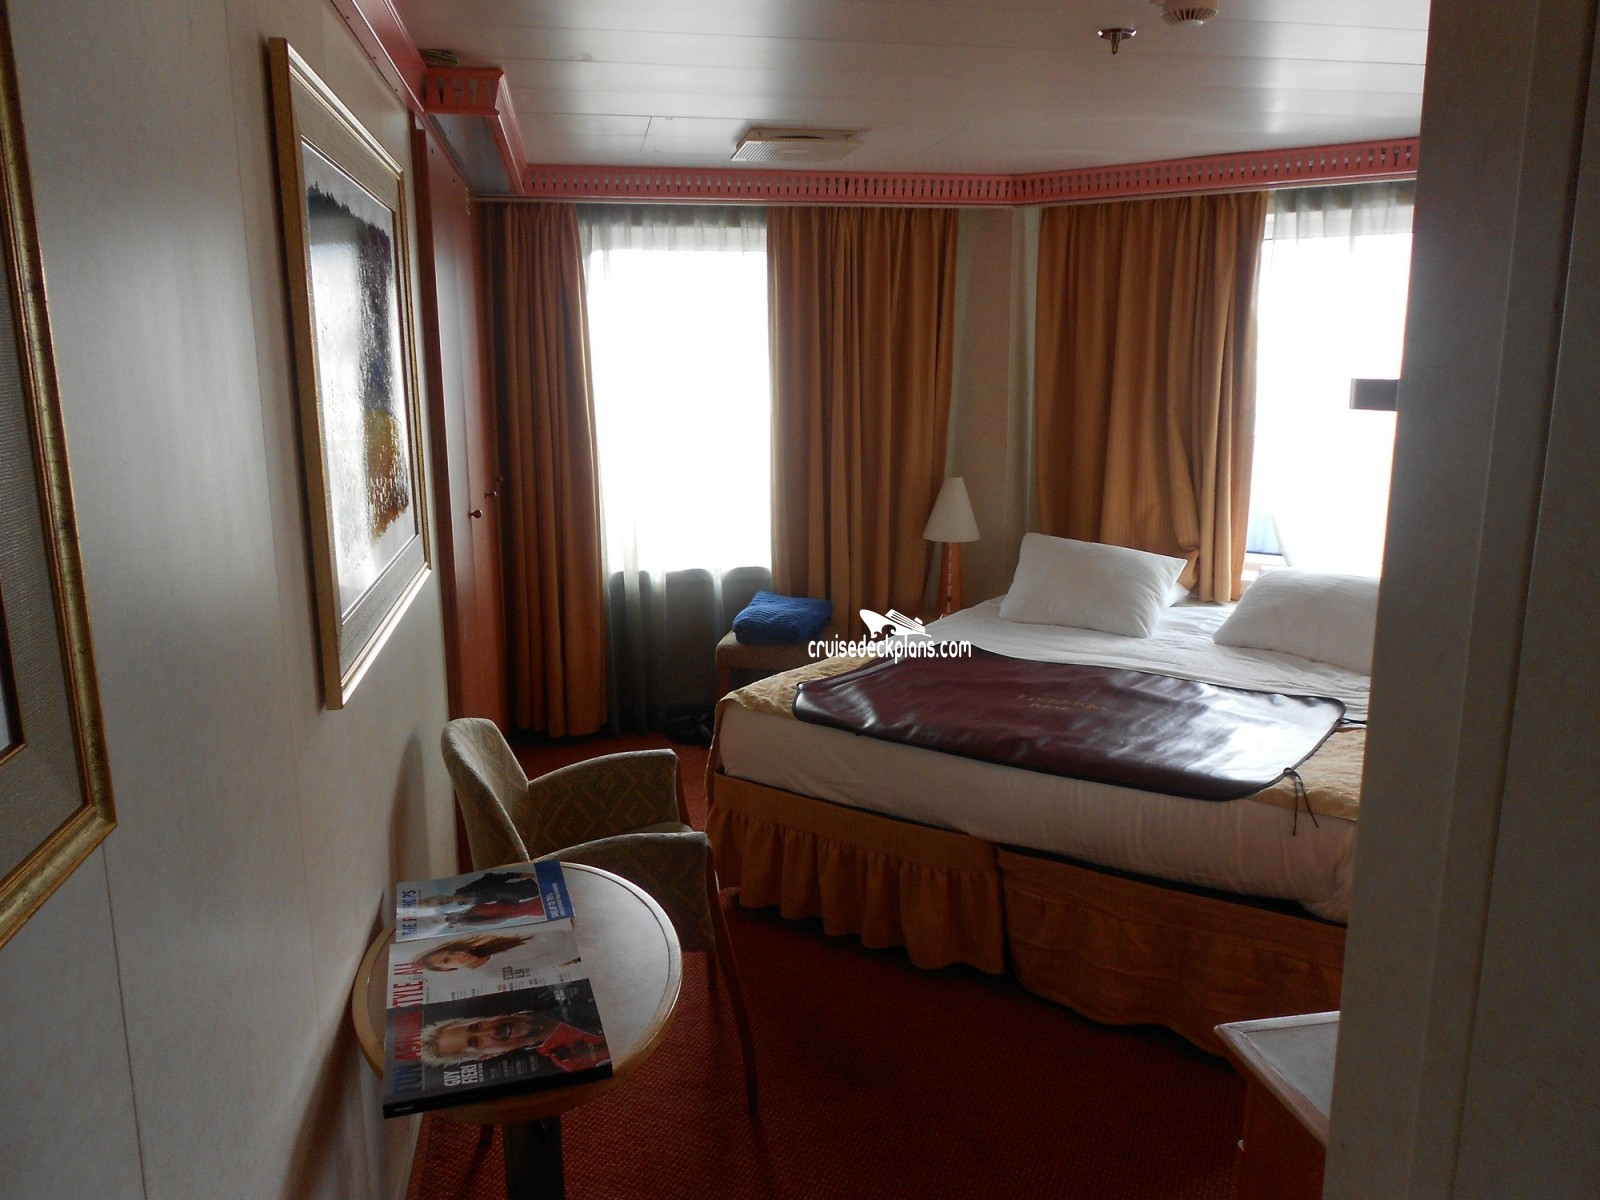 Dustin mccoy carnival conquest cabin photos for Room wraps